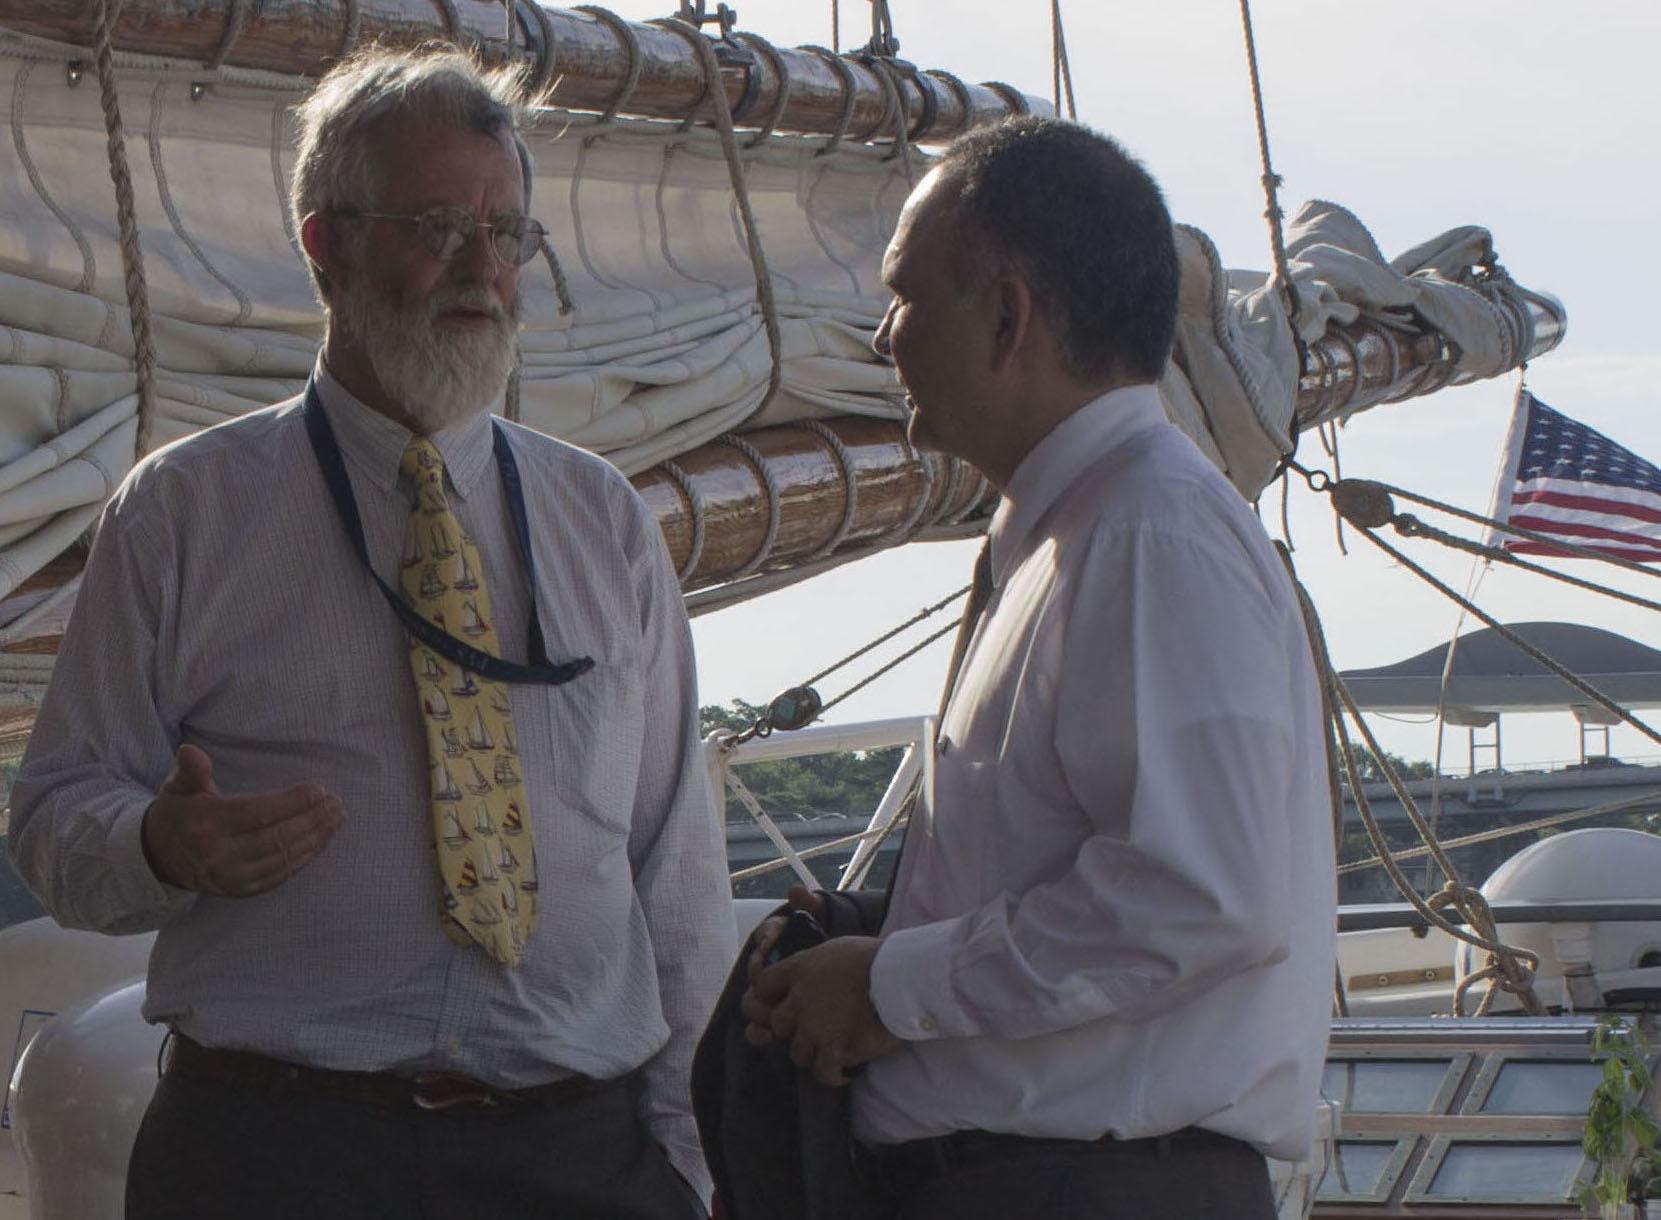 Boris Luis Gómez (R), First Secretary in the Embassy of the Republic of Cuba, tours the ship with boat owner Phineas Sprague